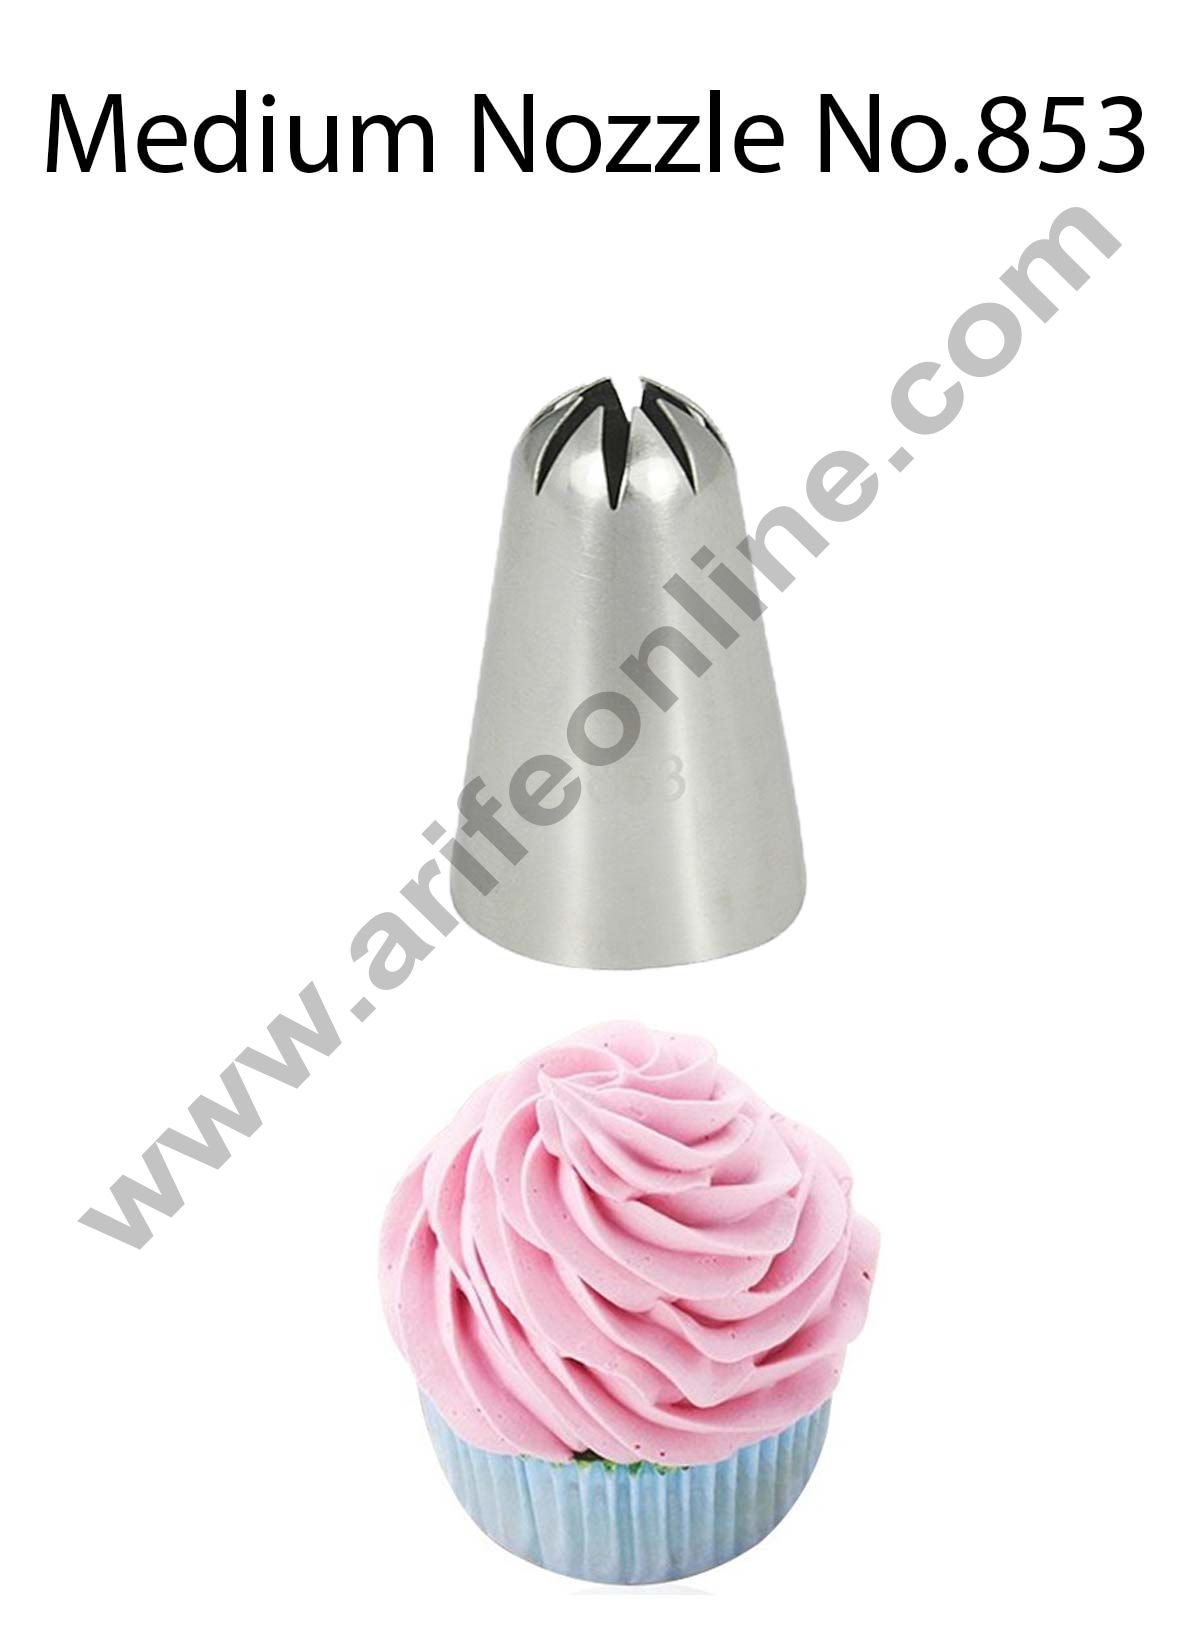 Cake Decor Medium Nozzle - No. 853 Closed Star Piping Nozzle